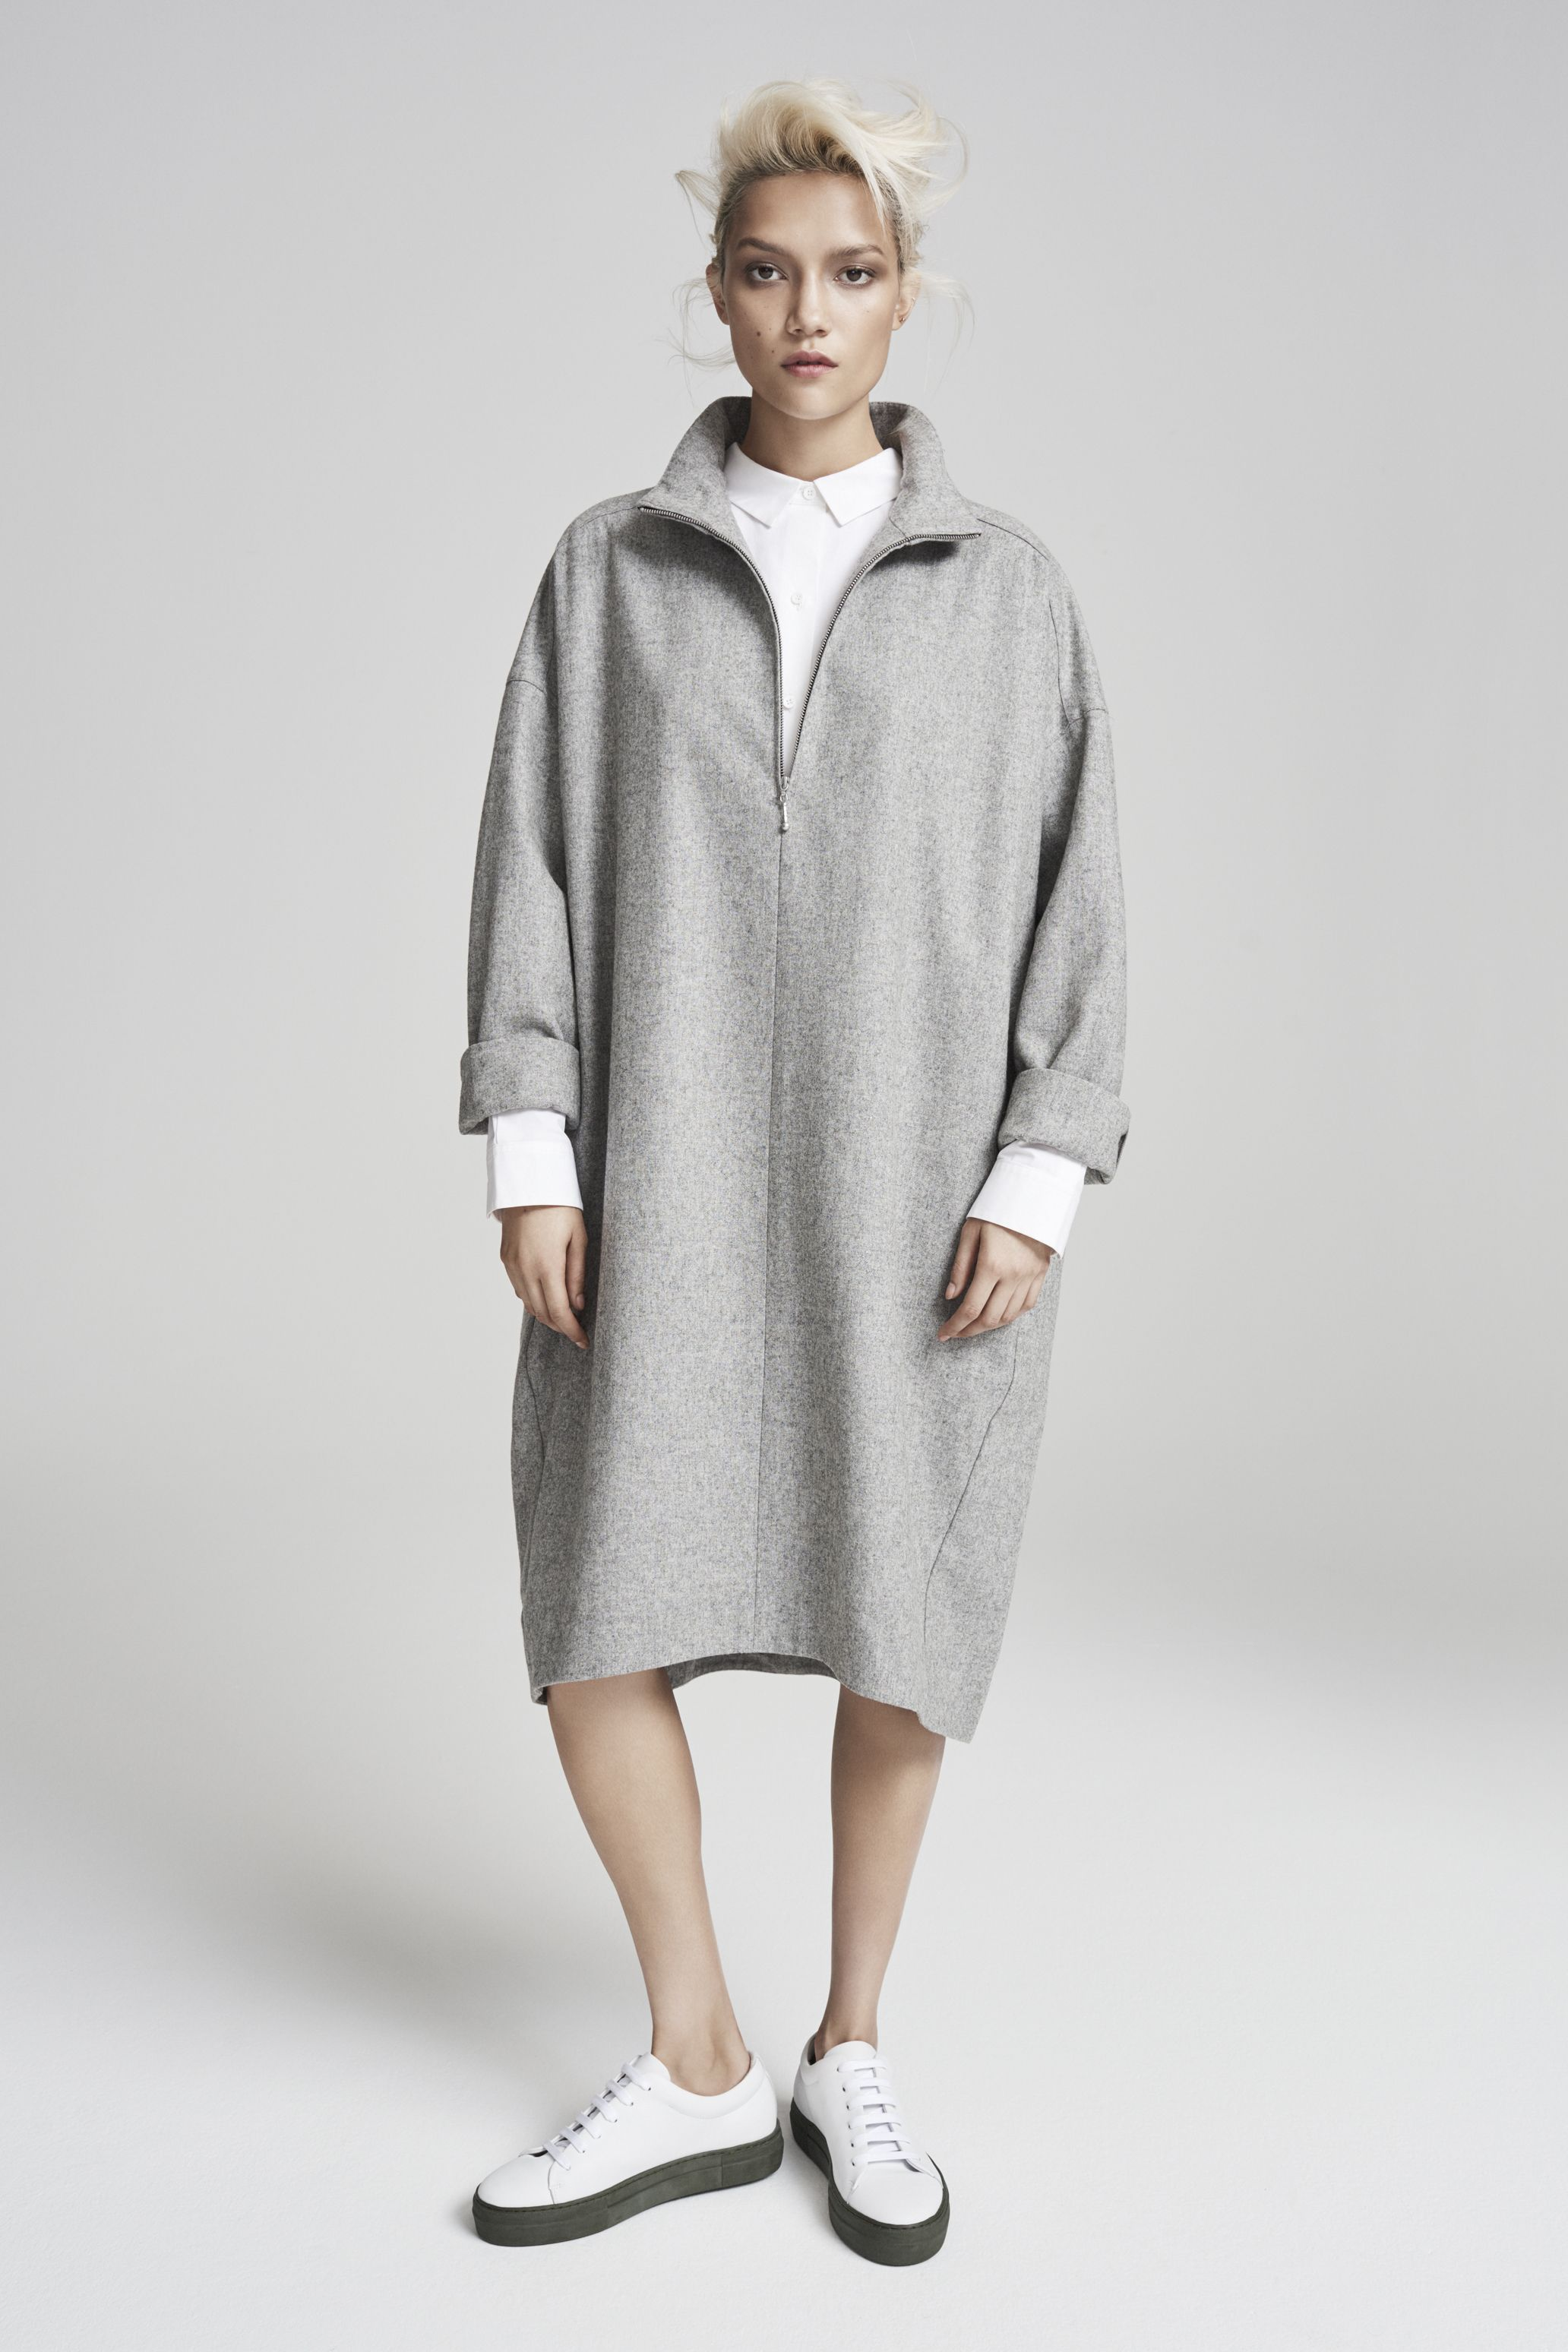 f4b5b7fbc207 The Kin by John Lewis Autumn 18 collection is a celebration of Japanese and  Scandinavian style